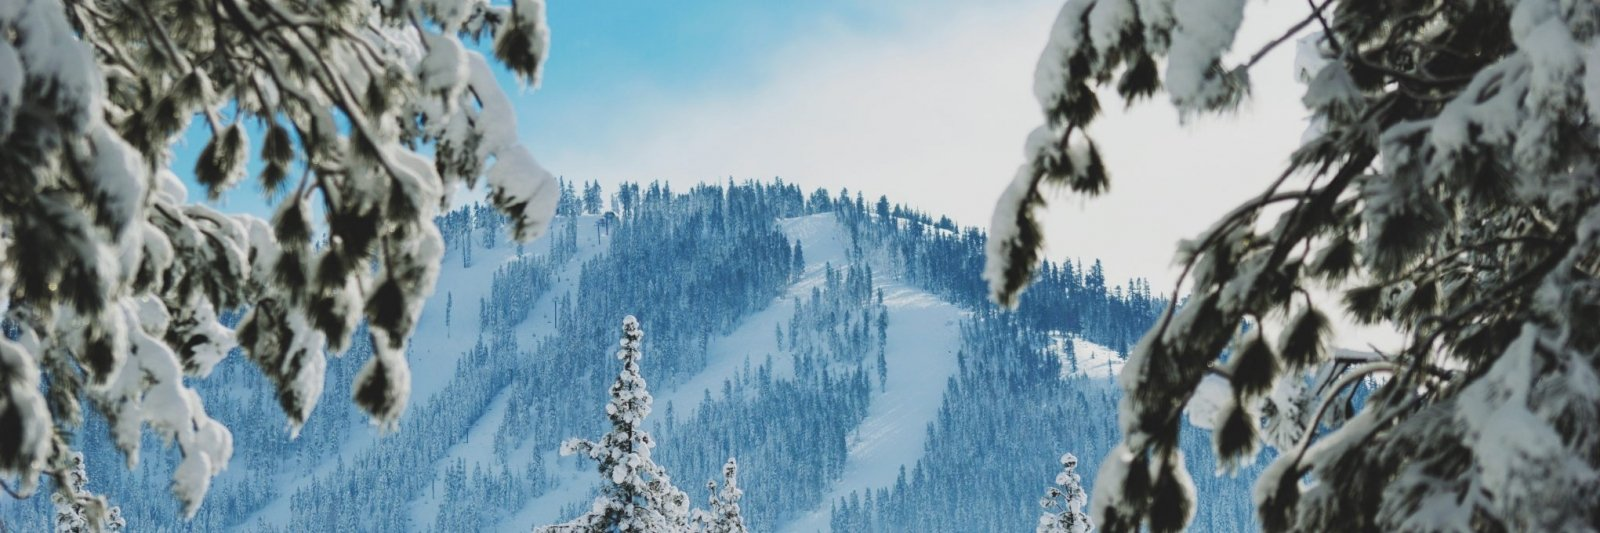 Snow covered ski slopes in winter seen from a distance.